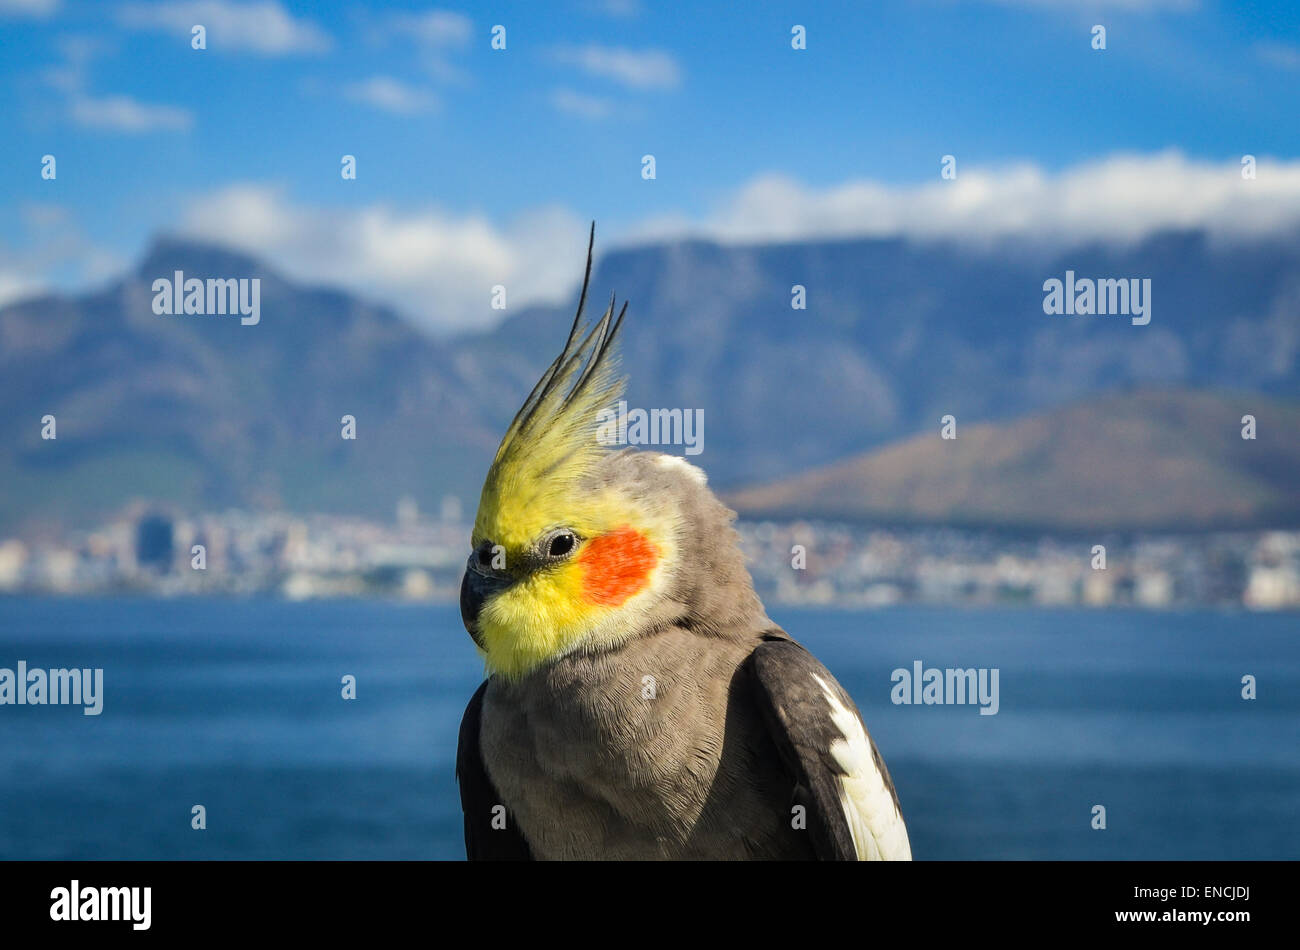 A cockatiel on a cargo ship leaving the port of Cape Town, South Africa, and Table mountain in the background - Stock Image